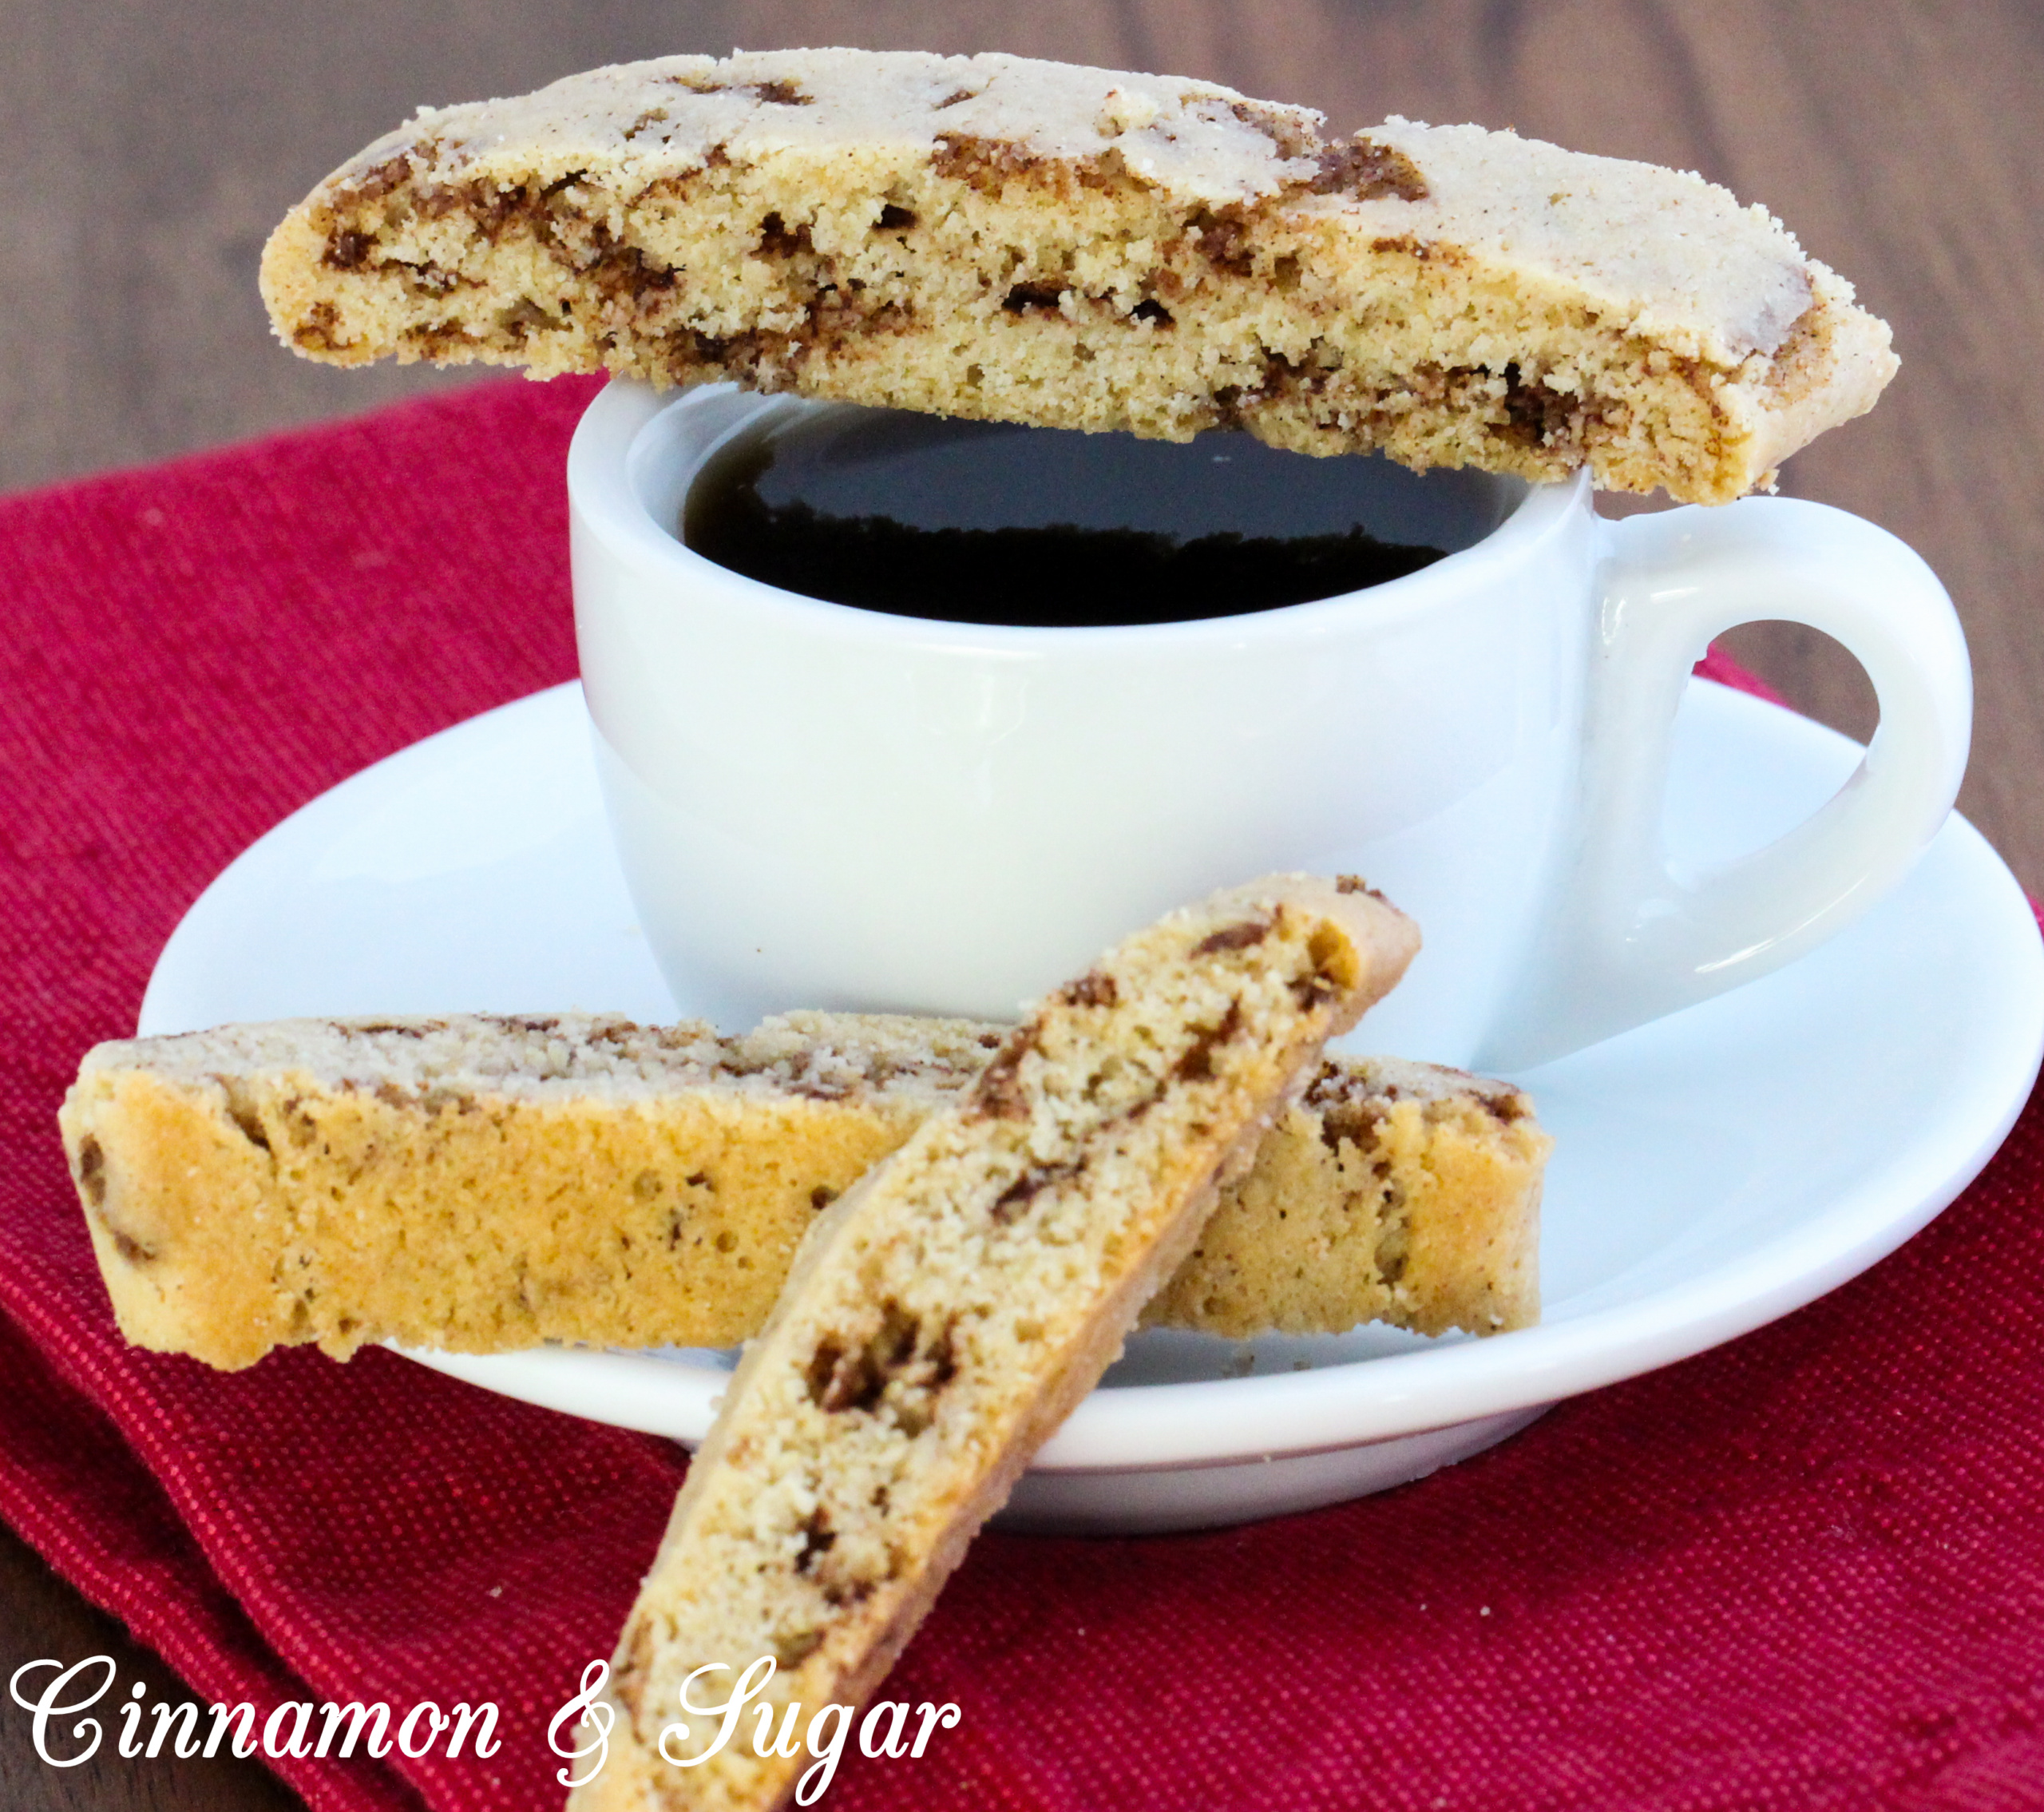 With generous amounts of ground cinnamon along with sweet-spicy bits of cinnamon chips that complemented a crunchy cookie base, Cinnamon Chip Biscotti are delicious cookies to share with family and friends. Recipe created by Cinnamon & Sugar for Catherine Bruns, author of IT CANNOLI BE MURDER.